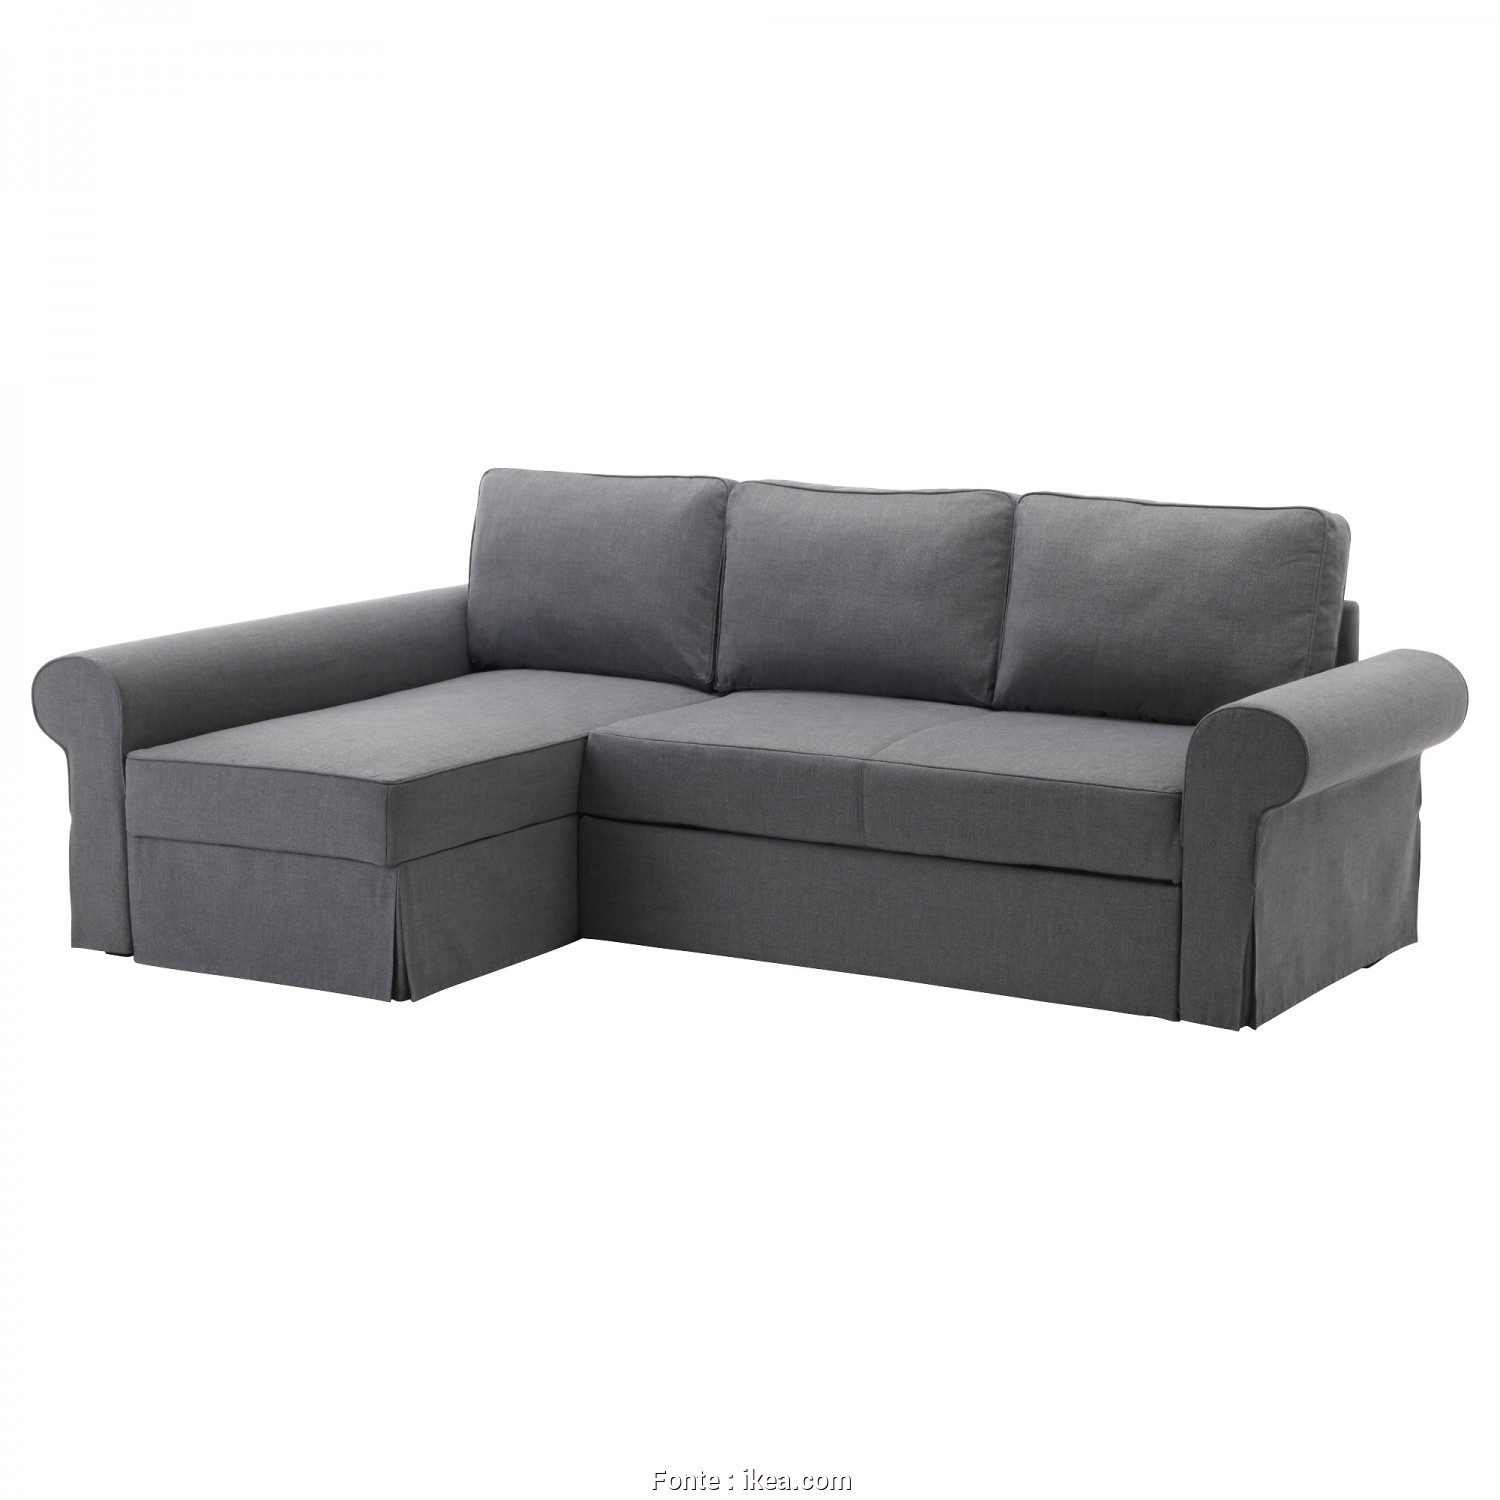 Backabro Ikea Review, Costoso BACKABRO Sofa, With Chaise Longue Nordvalla Dark Grey